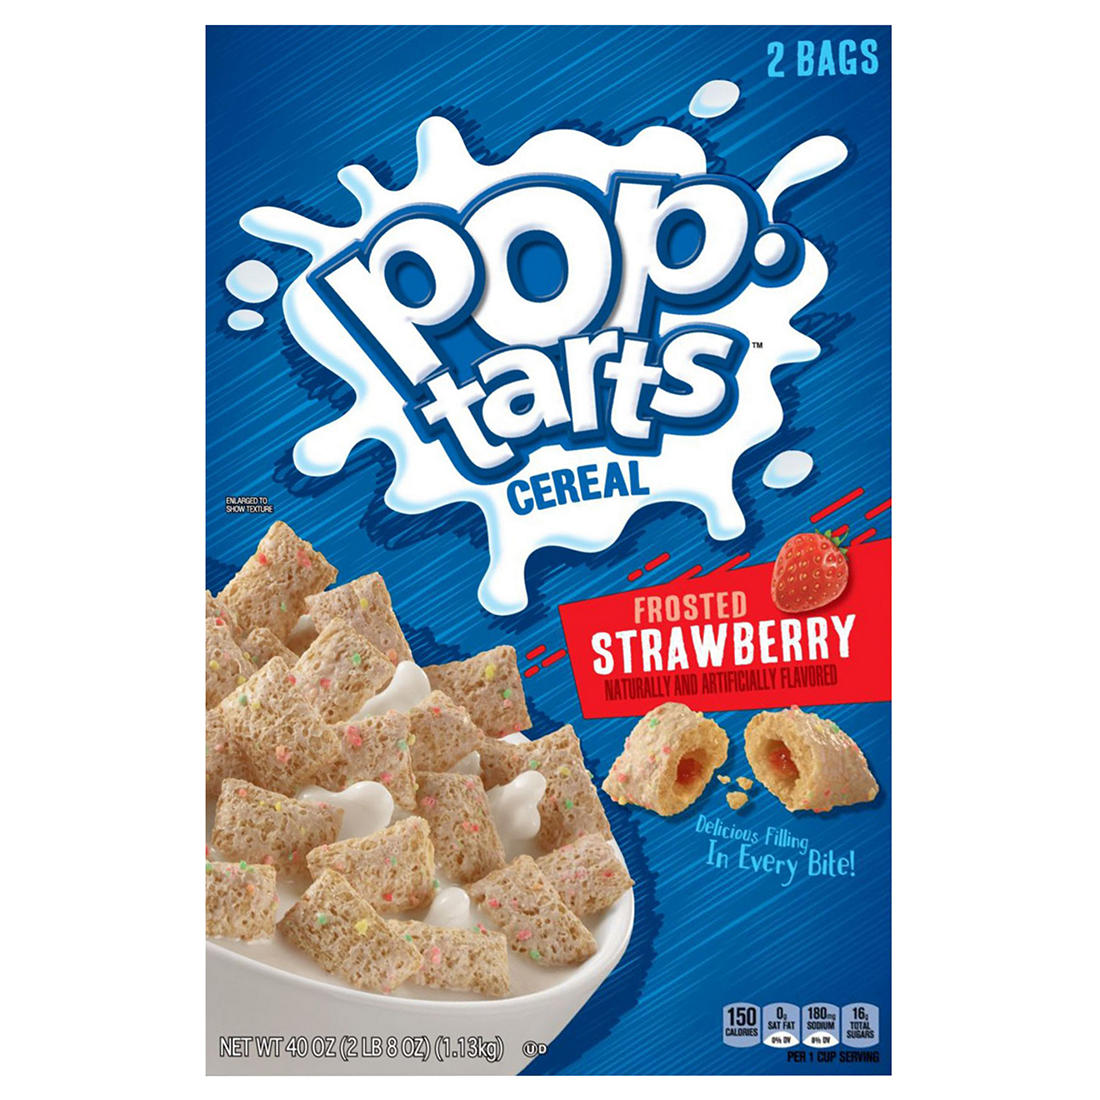 photograph regarding Pop Tarts Coupon Printable referred to as Kelloggs Pop-Tarts Frosted Strawberry Cereal, 2 pk./20 oz.